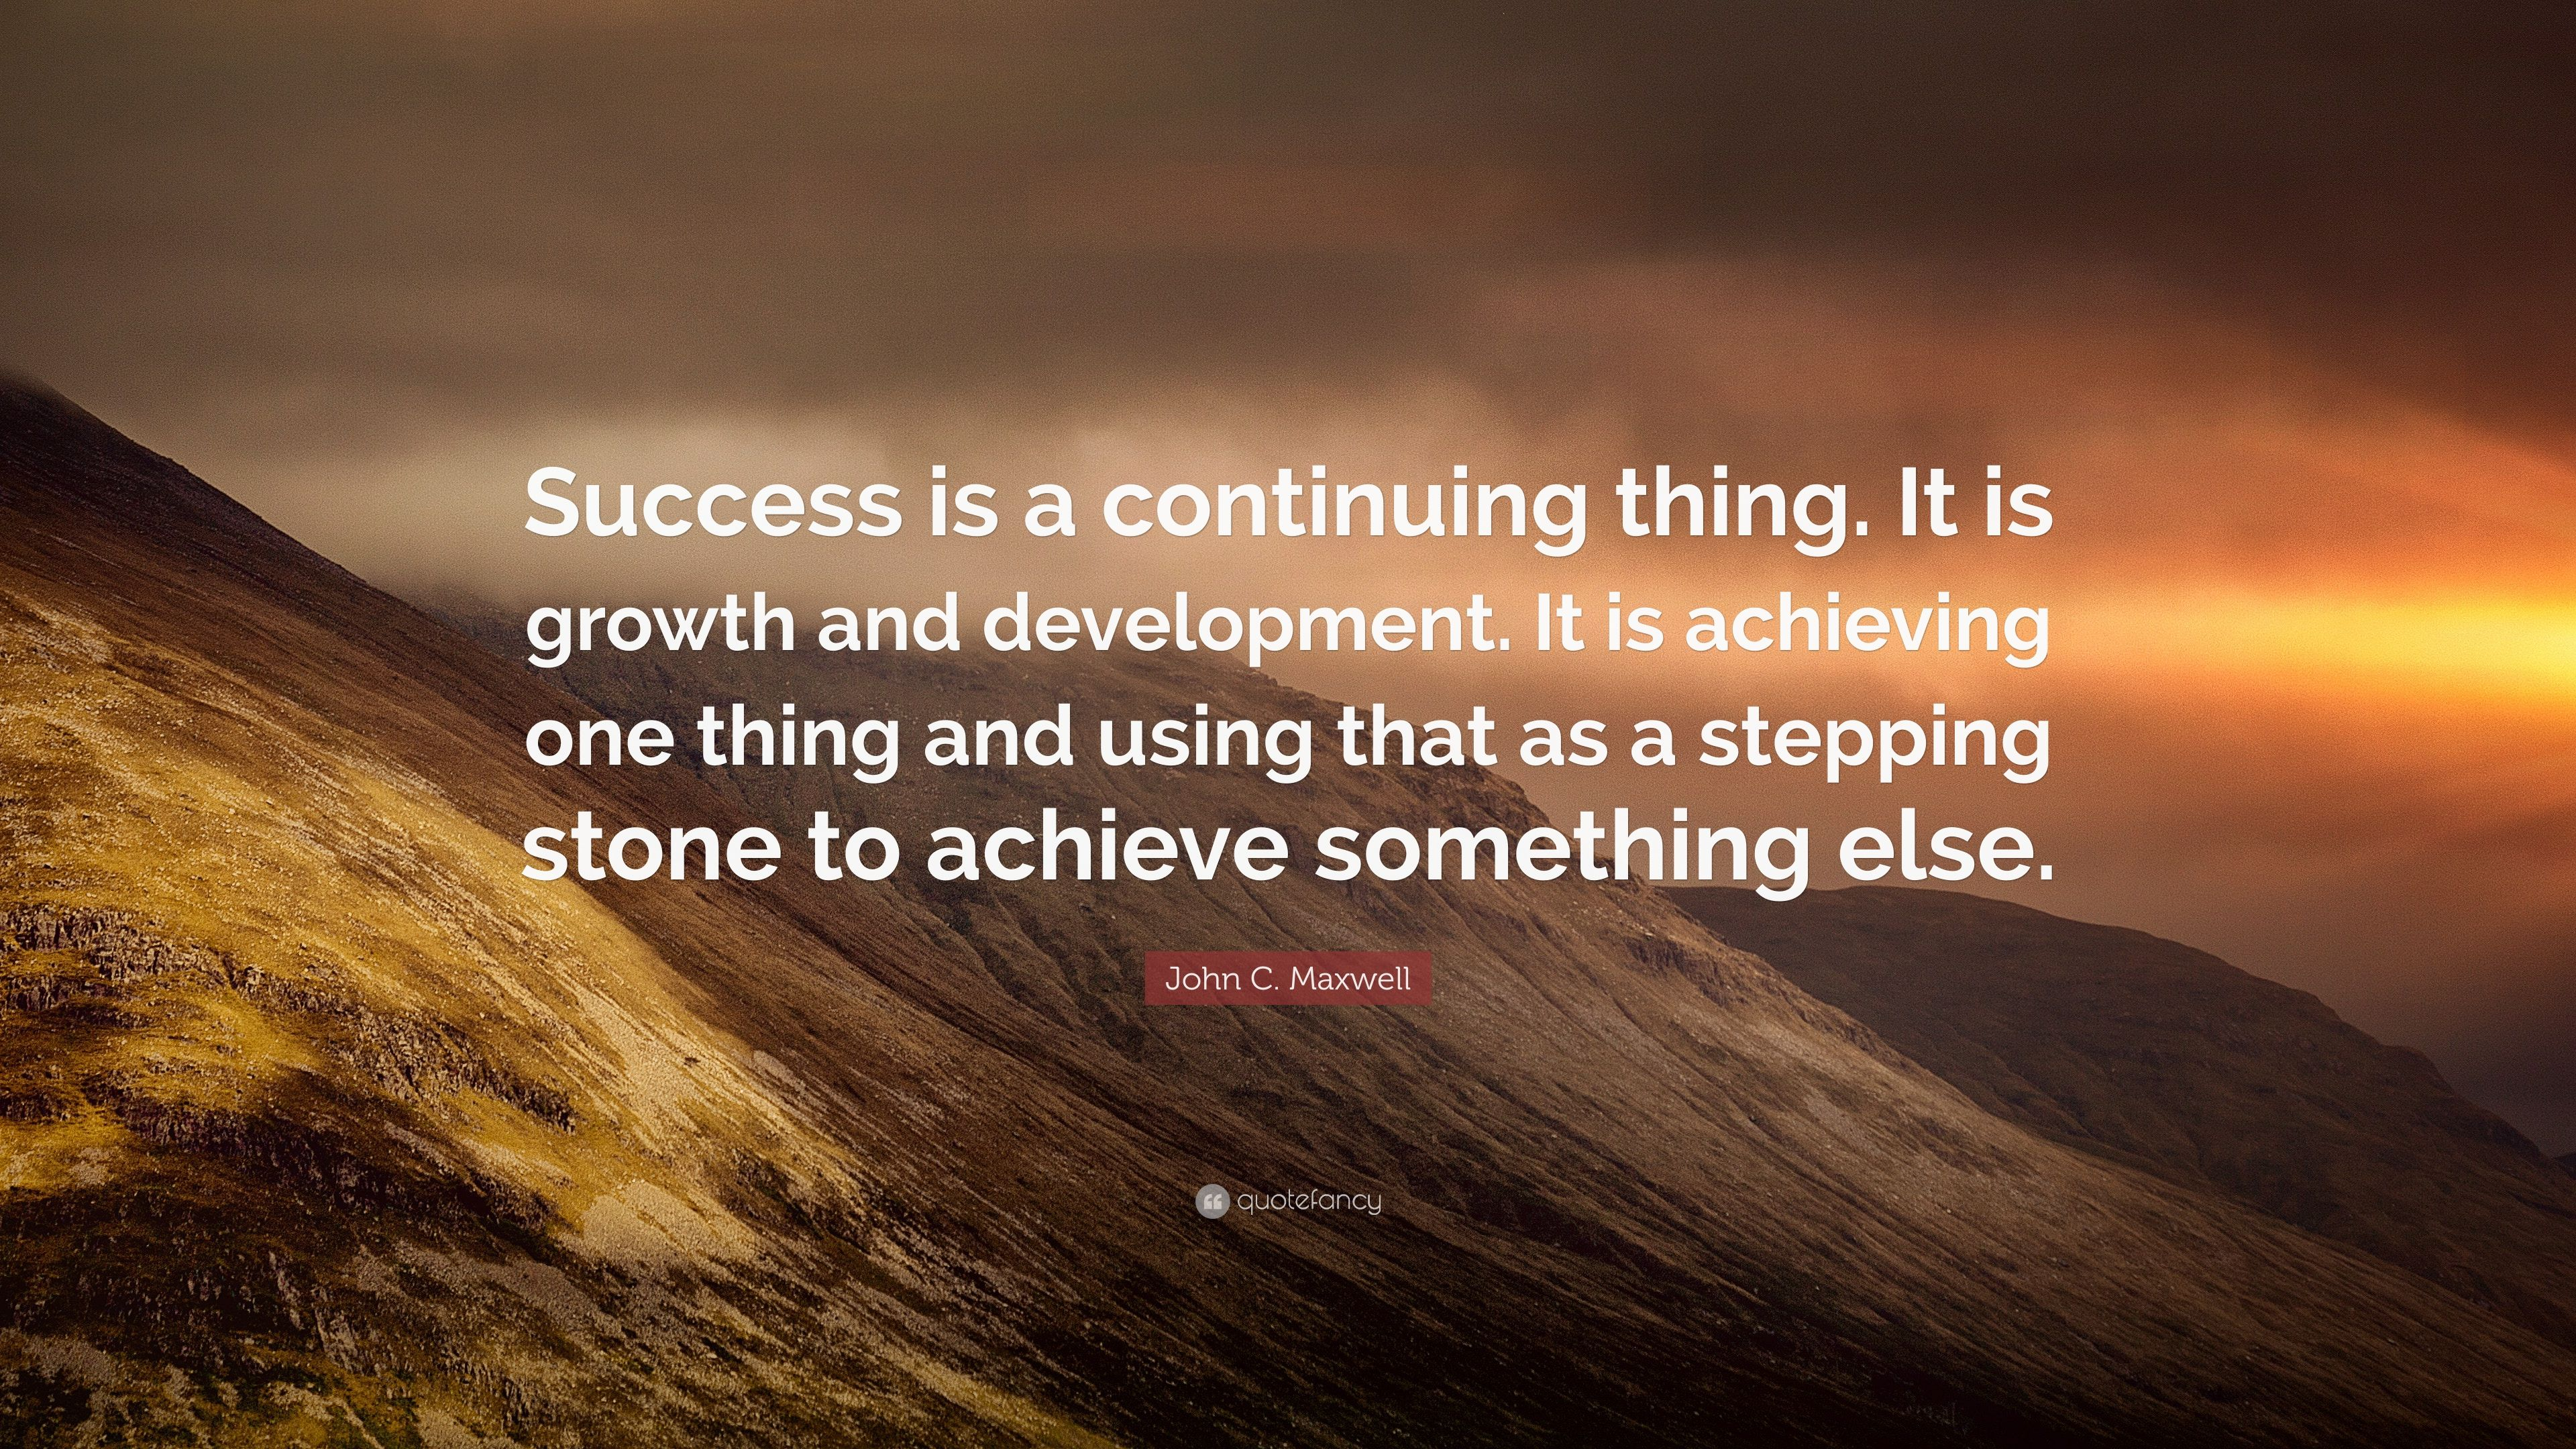 Achieve Quotes Wallpaper John C Maxwell Quote Success Is A Continuing Thing It